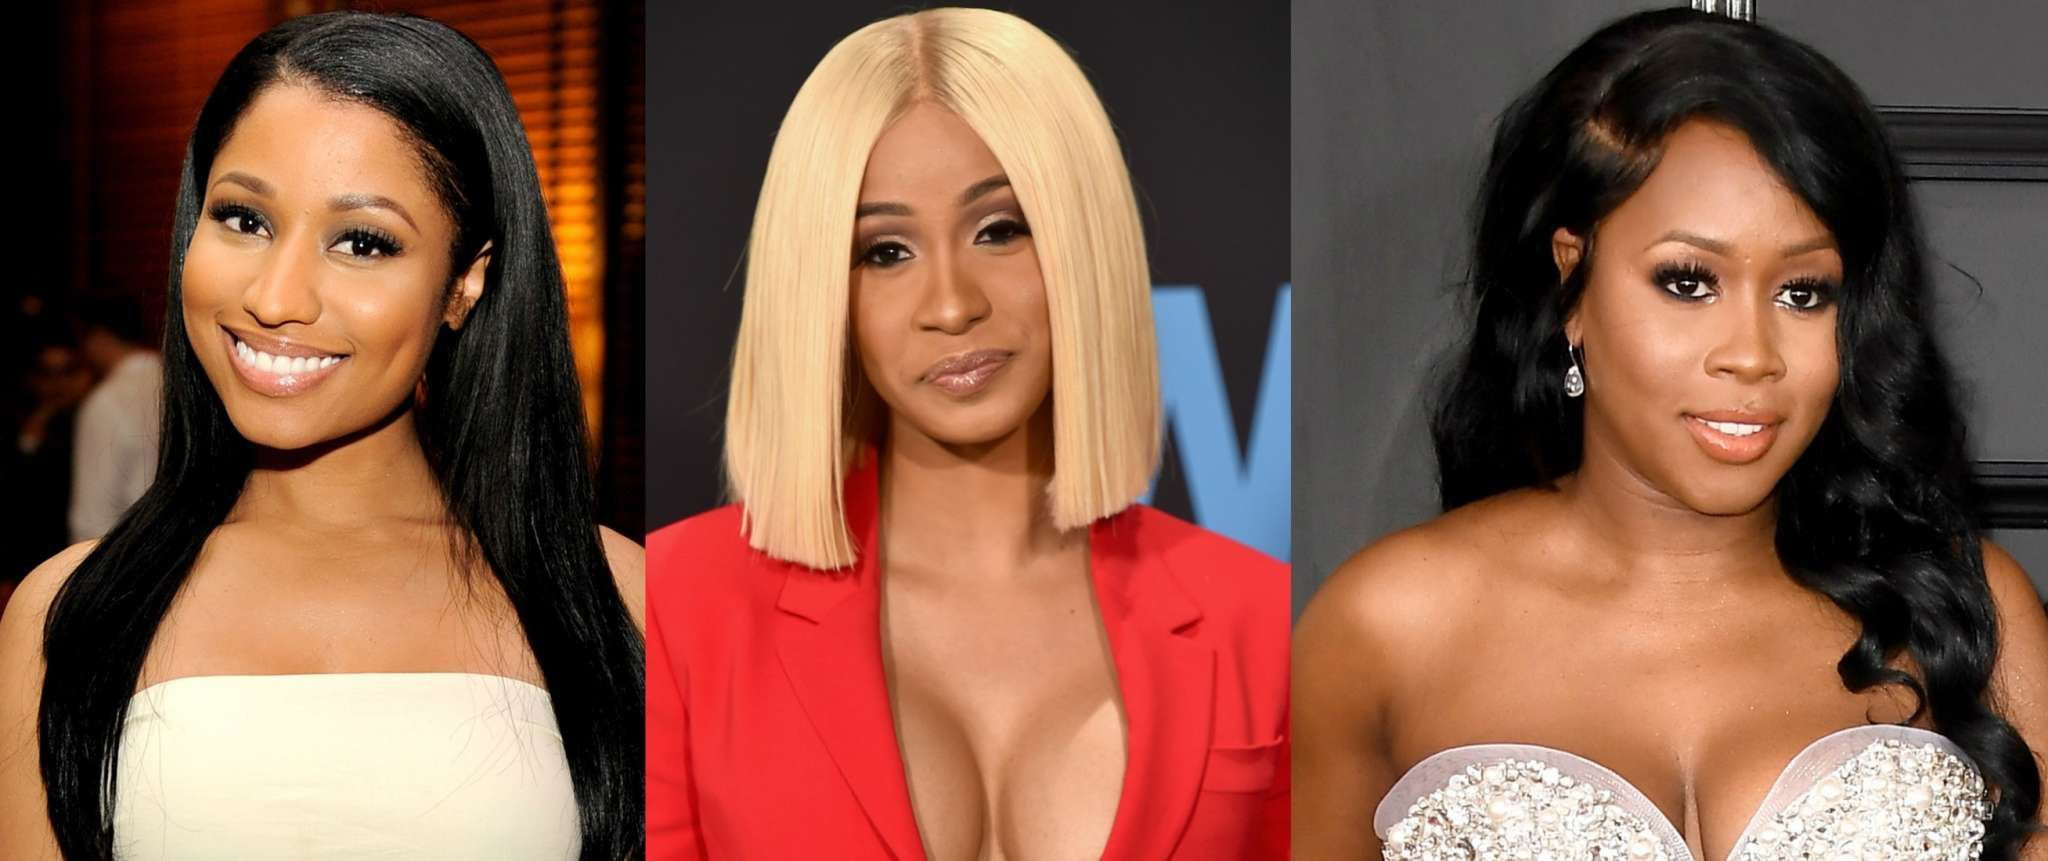 Nicki Minaj And Cardi B S Feud Will Stop Being Funny To Fans If